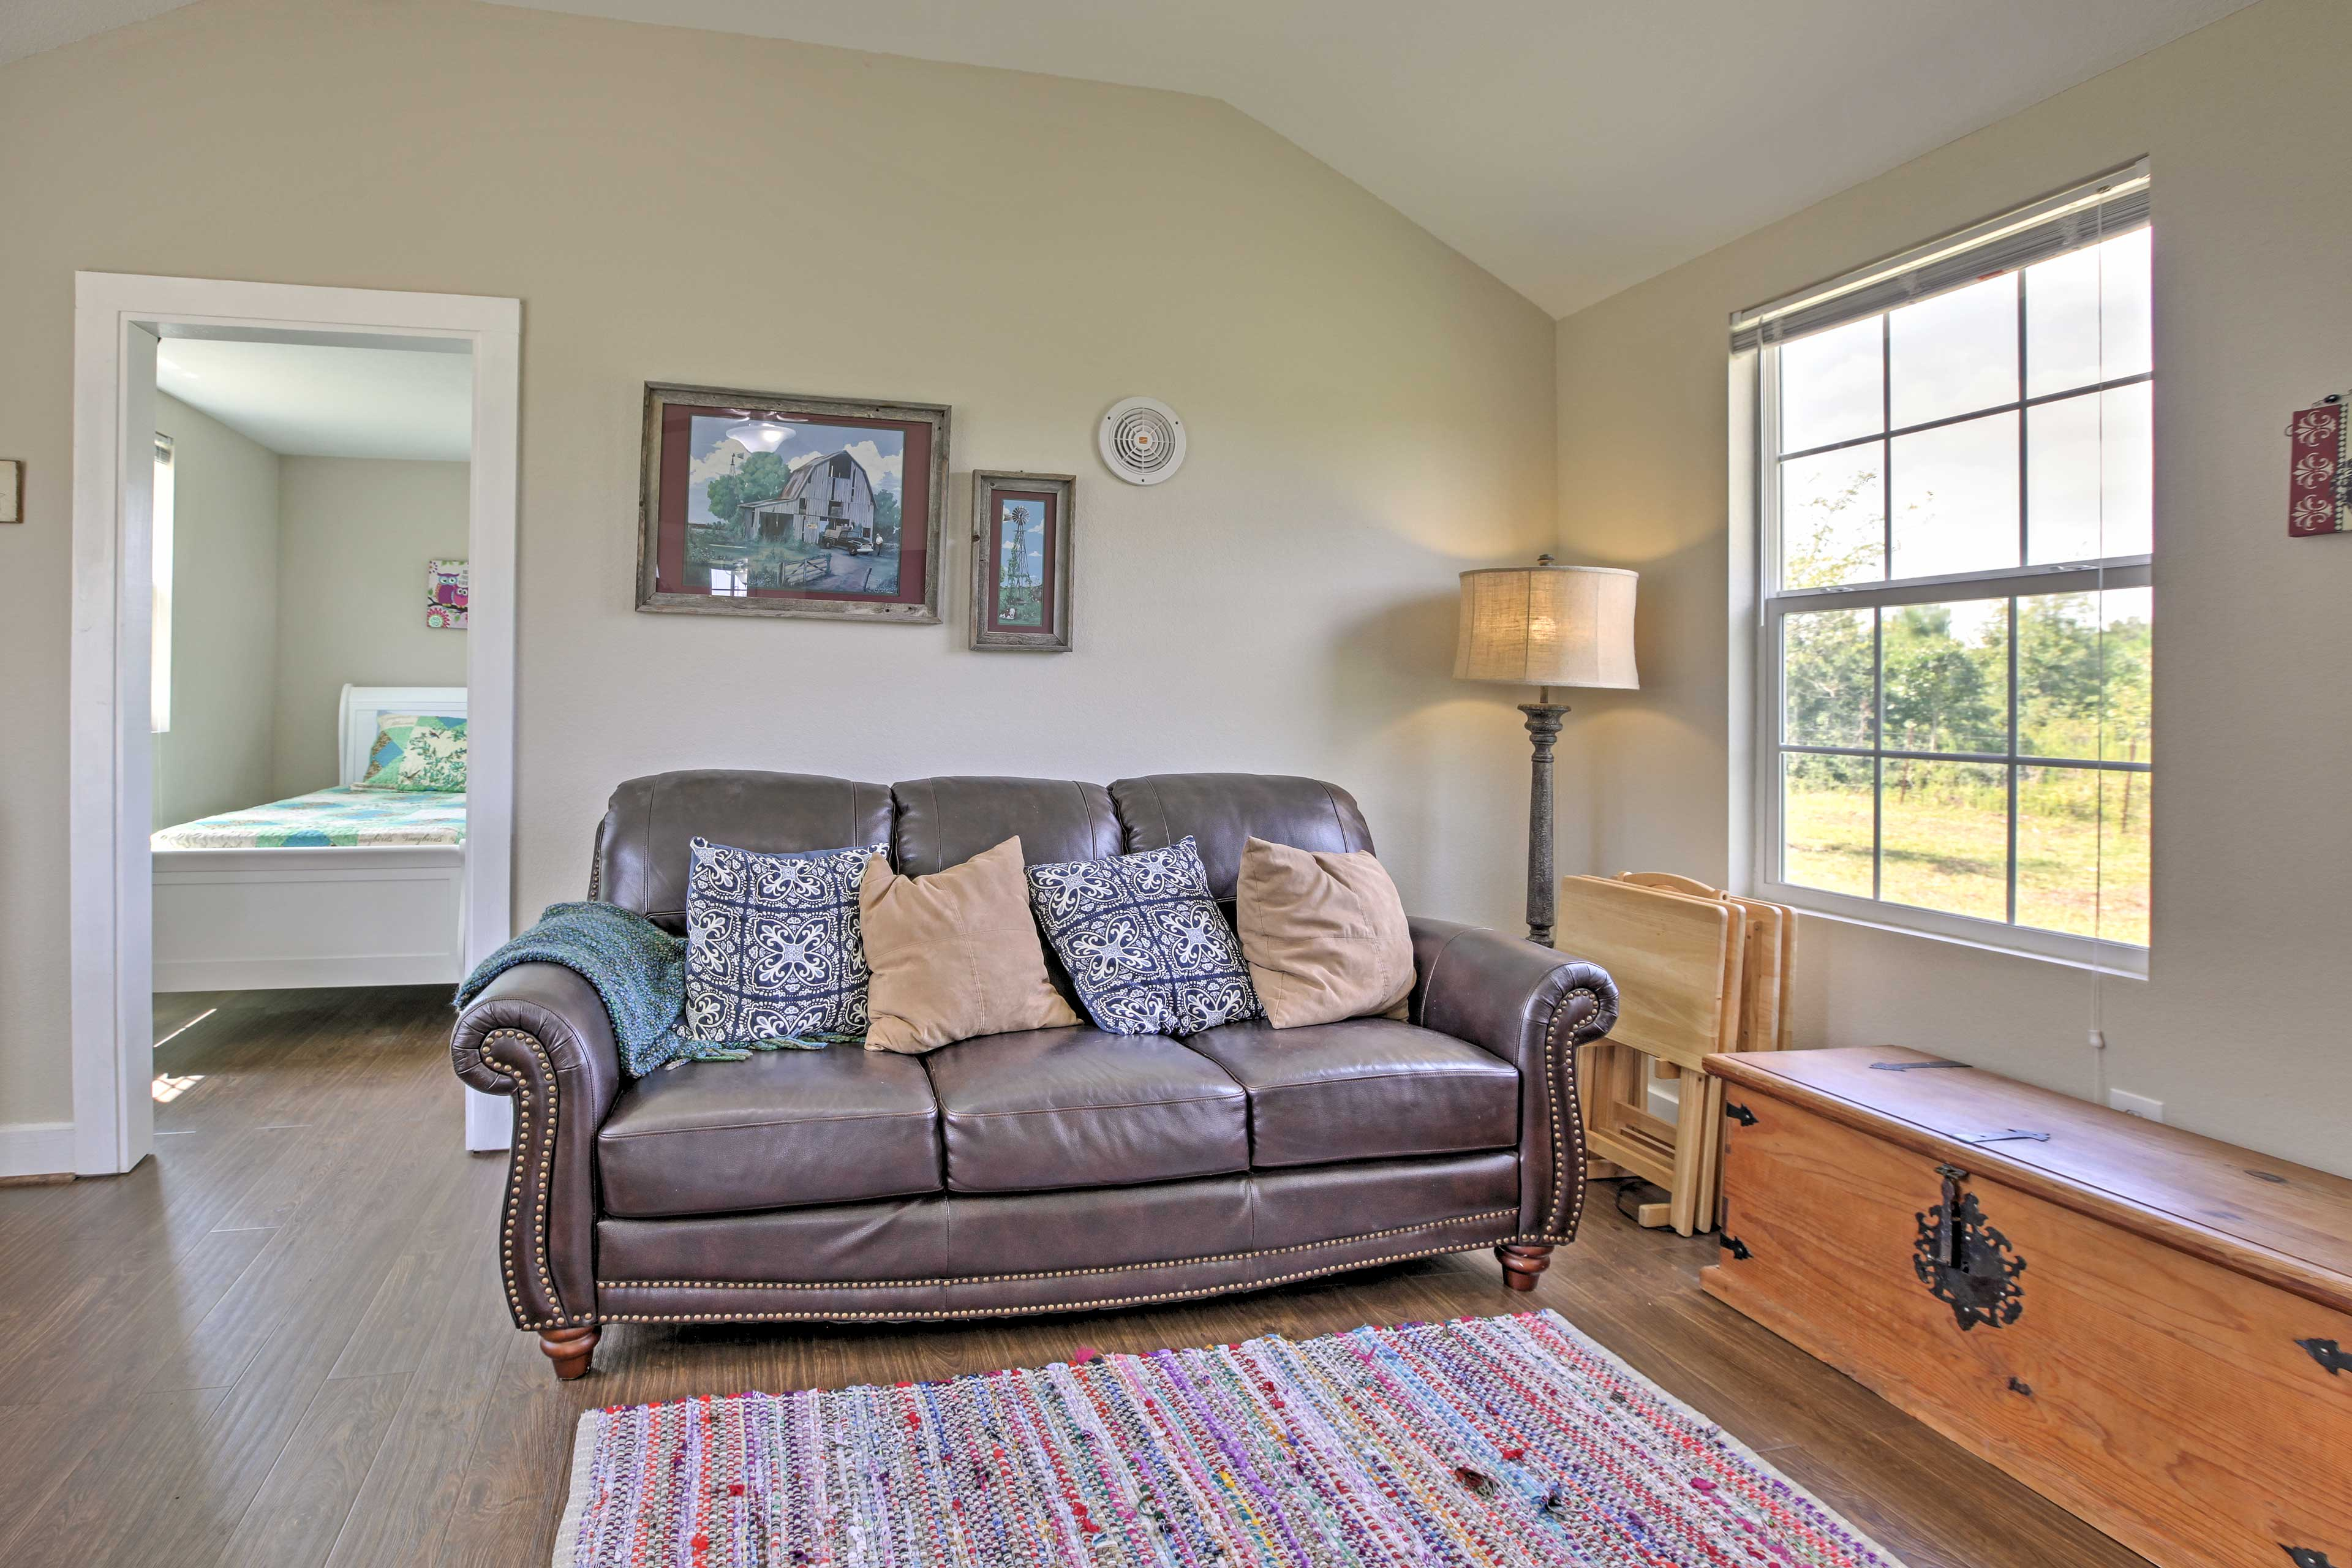 Read a book and admire the farm surroundings out the adjacent window.